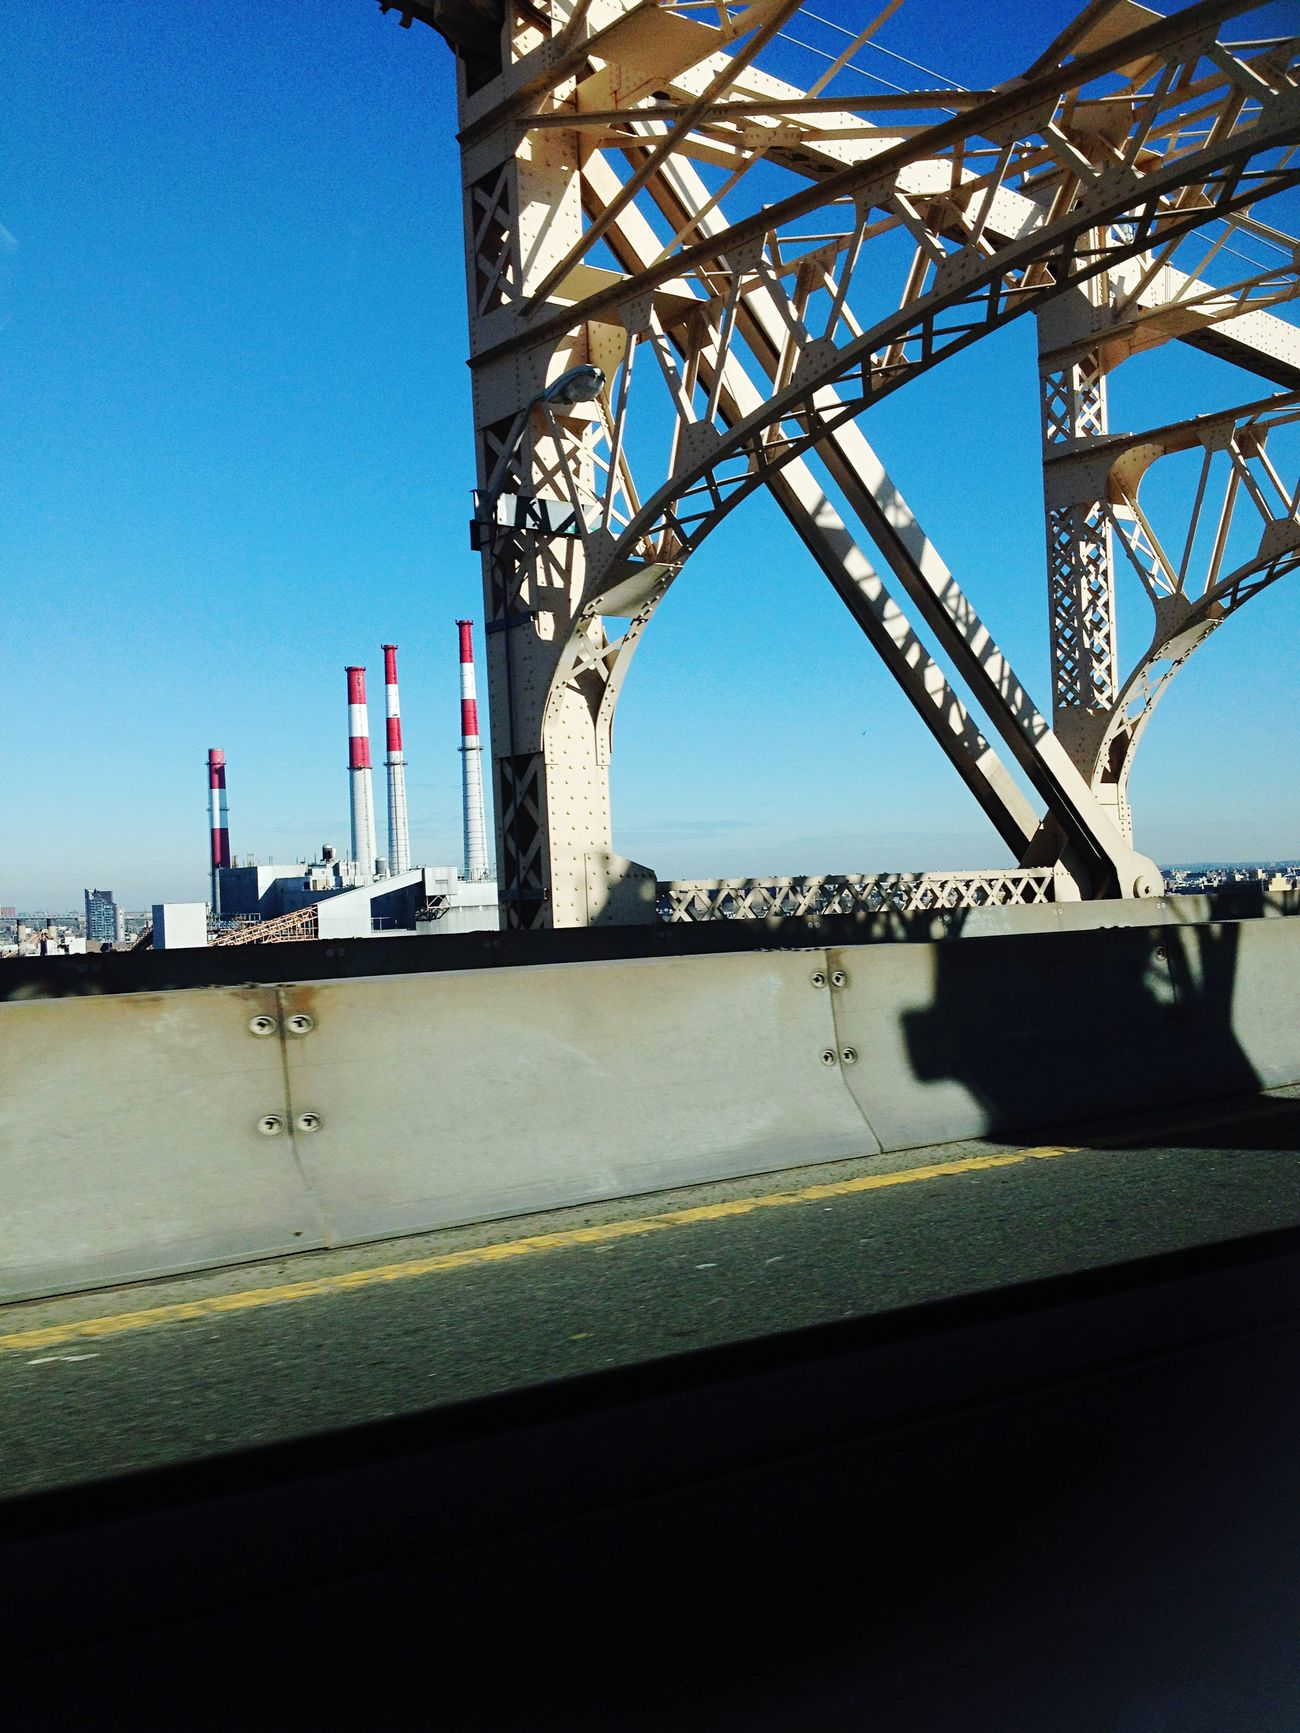 On My Way Home 2013 Journey 2013 Memories New York To  Gothenburg Love ♥ Bridge - Man Made Structure Outdoors Low Angle View Transportation Taxi Blue Sky Industry Bridge Will Miss You Connection No People